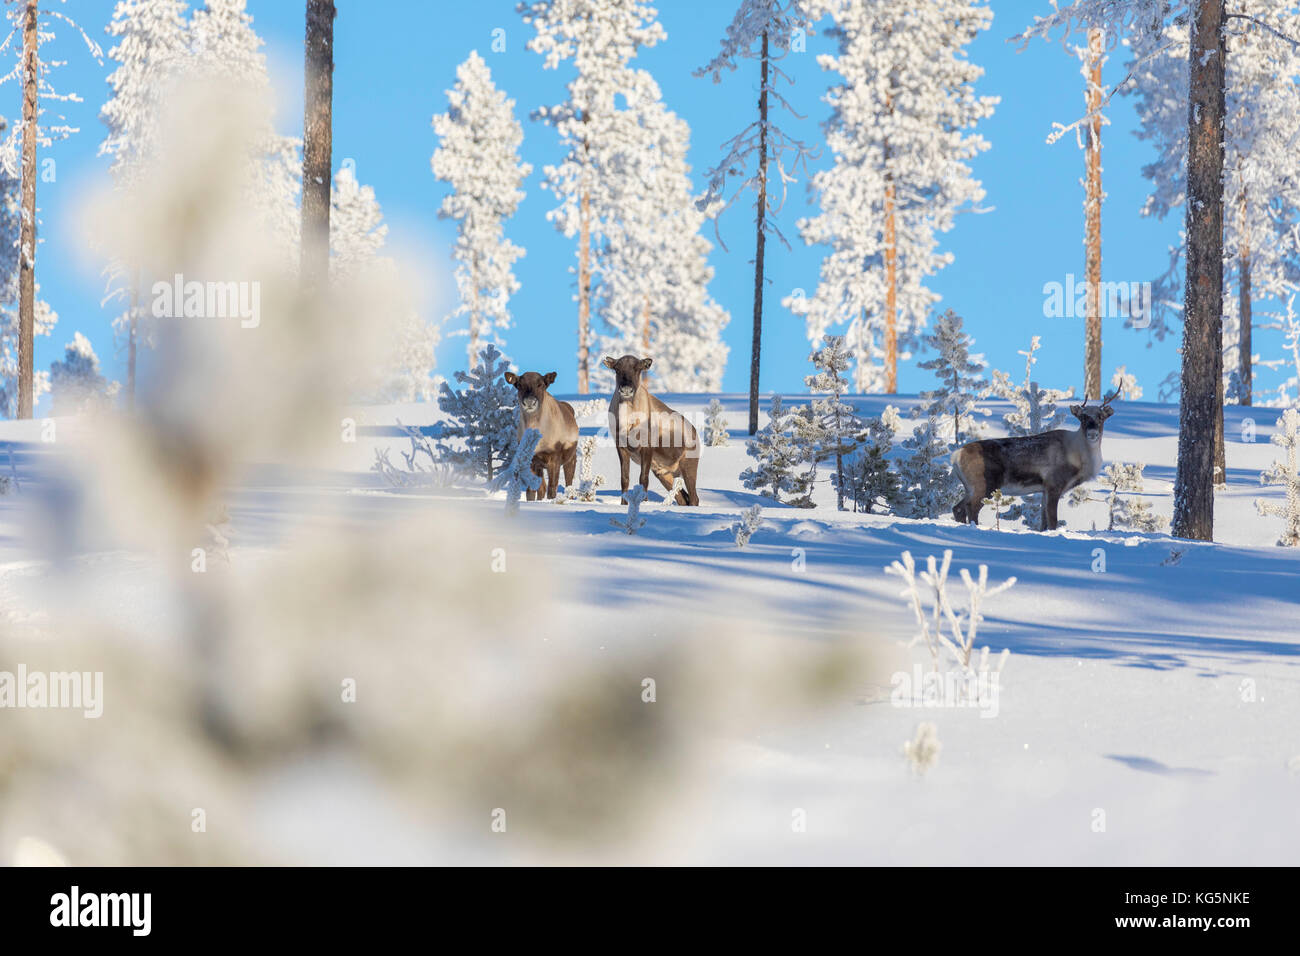 Reindeer among frozen trees in the snowy forest, Kiruna, Norrbotten County, Lapland, Sweden - Stock Image